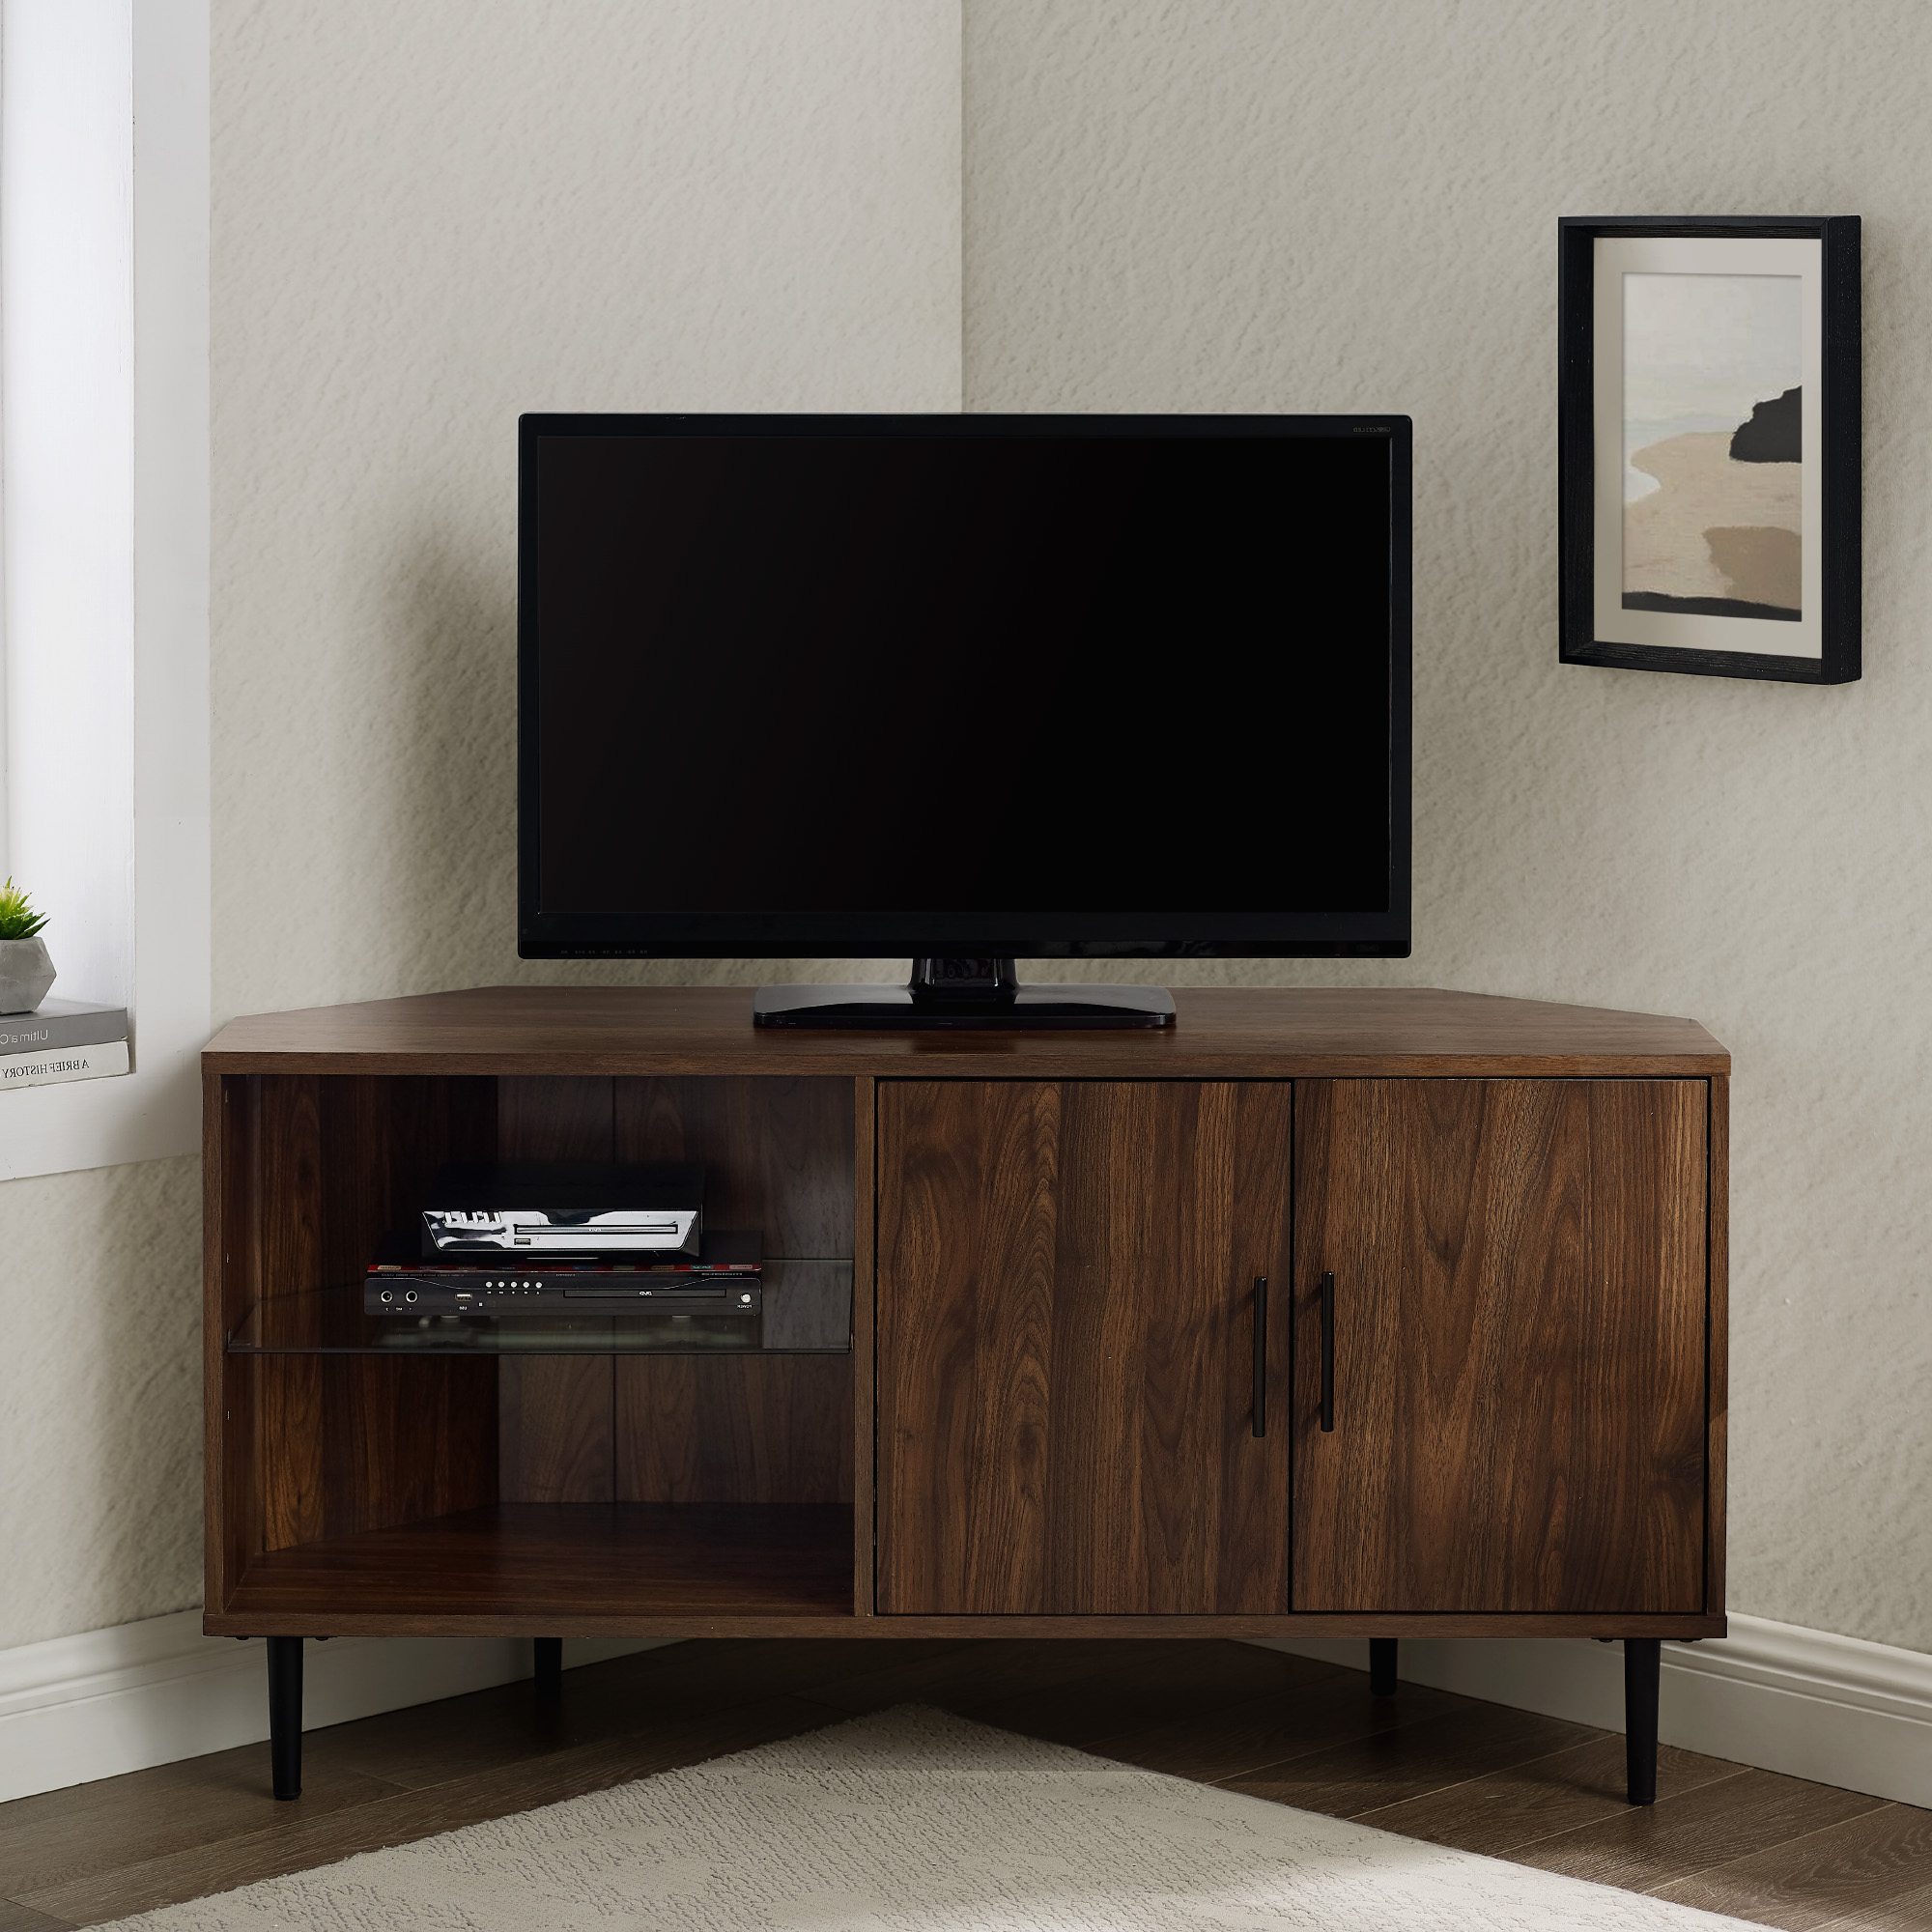 """Manor Park Basie 2 Door Corner Tv Stand For Tvs Up To 55 Pertaining To Favorite Baba Tv Stands For Tvs Up To 55"""" (View 9 of 25)"""